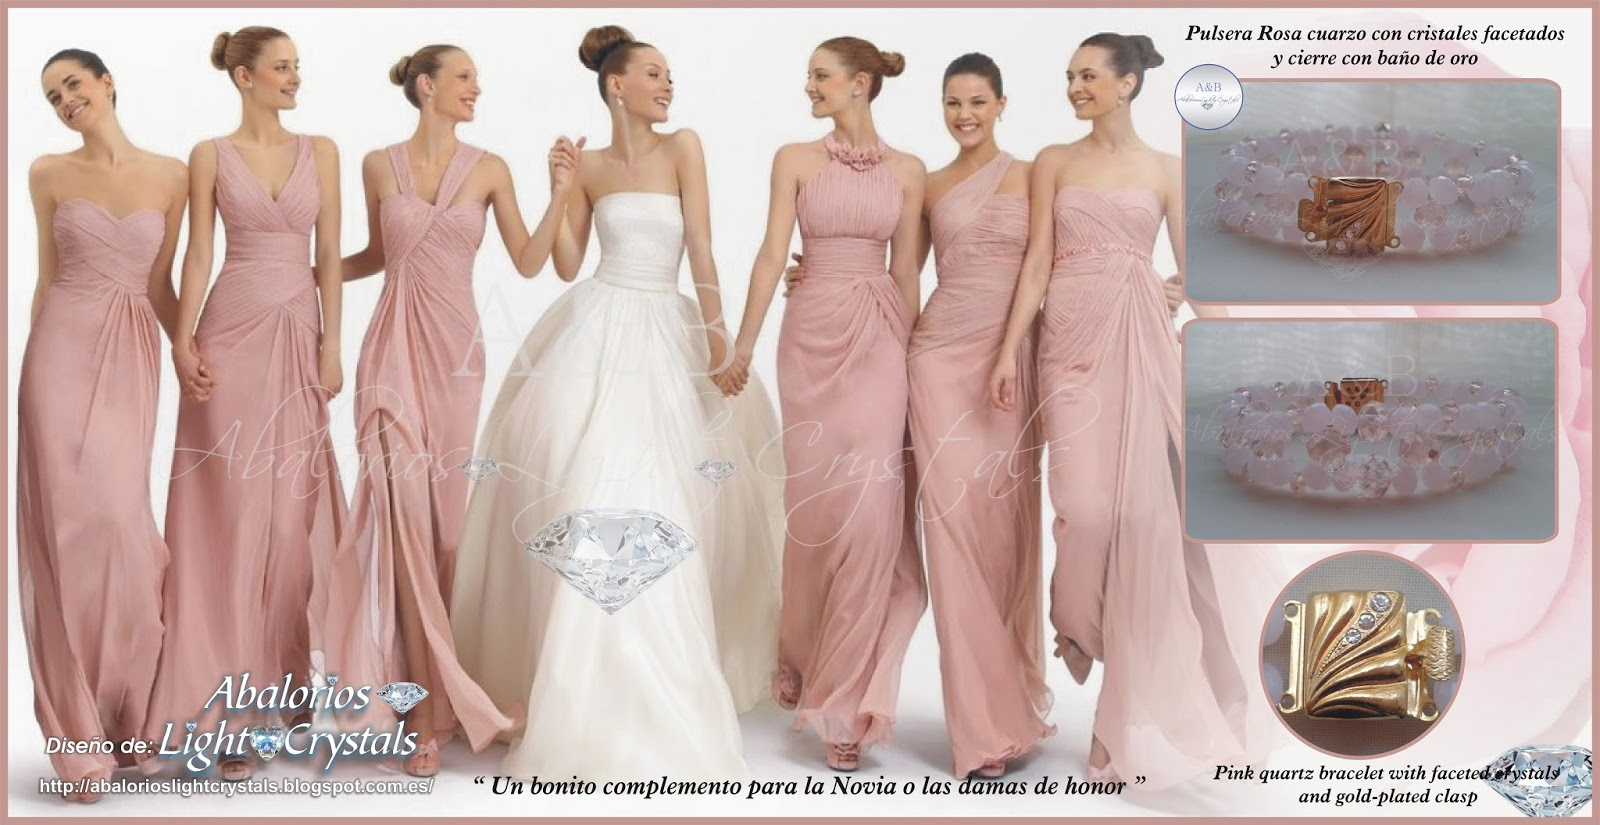 Vistoso Vestidos De Las Damas De Honor De Oro Festooning - Ideas de ...